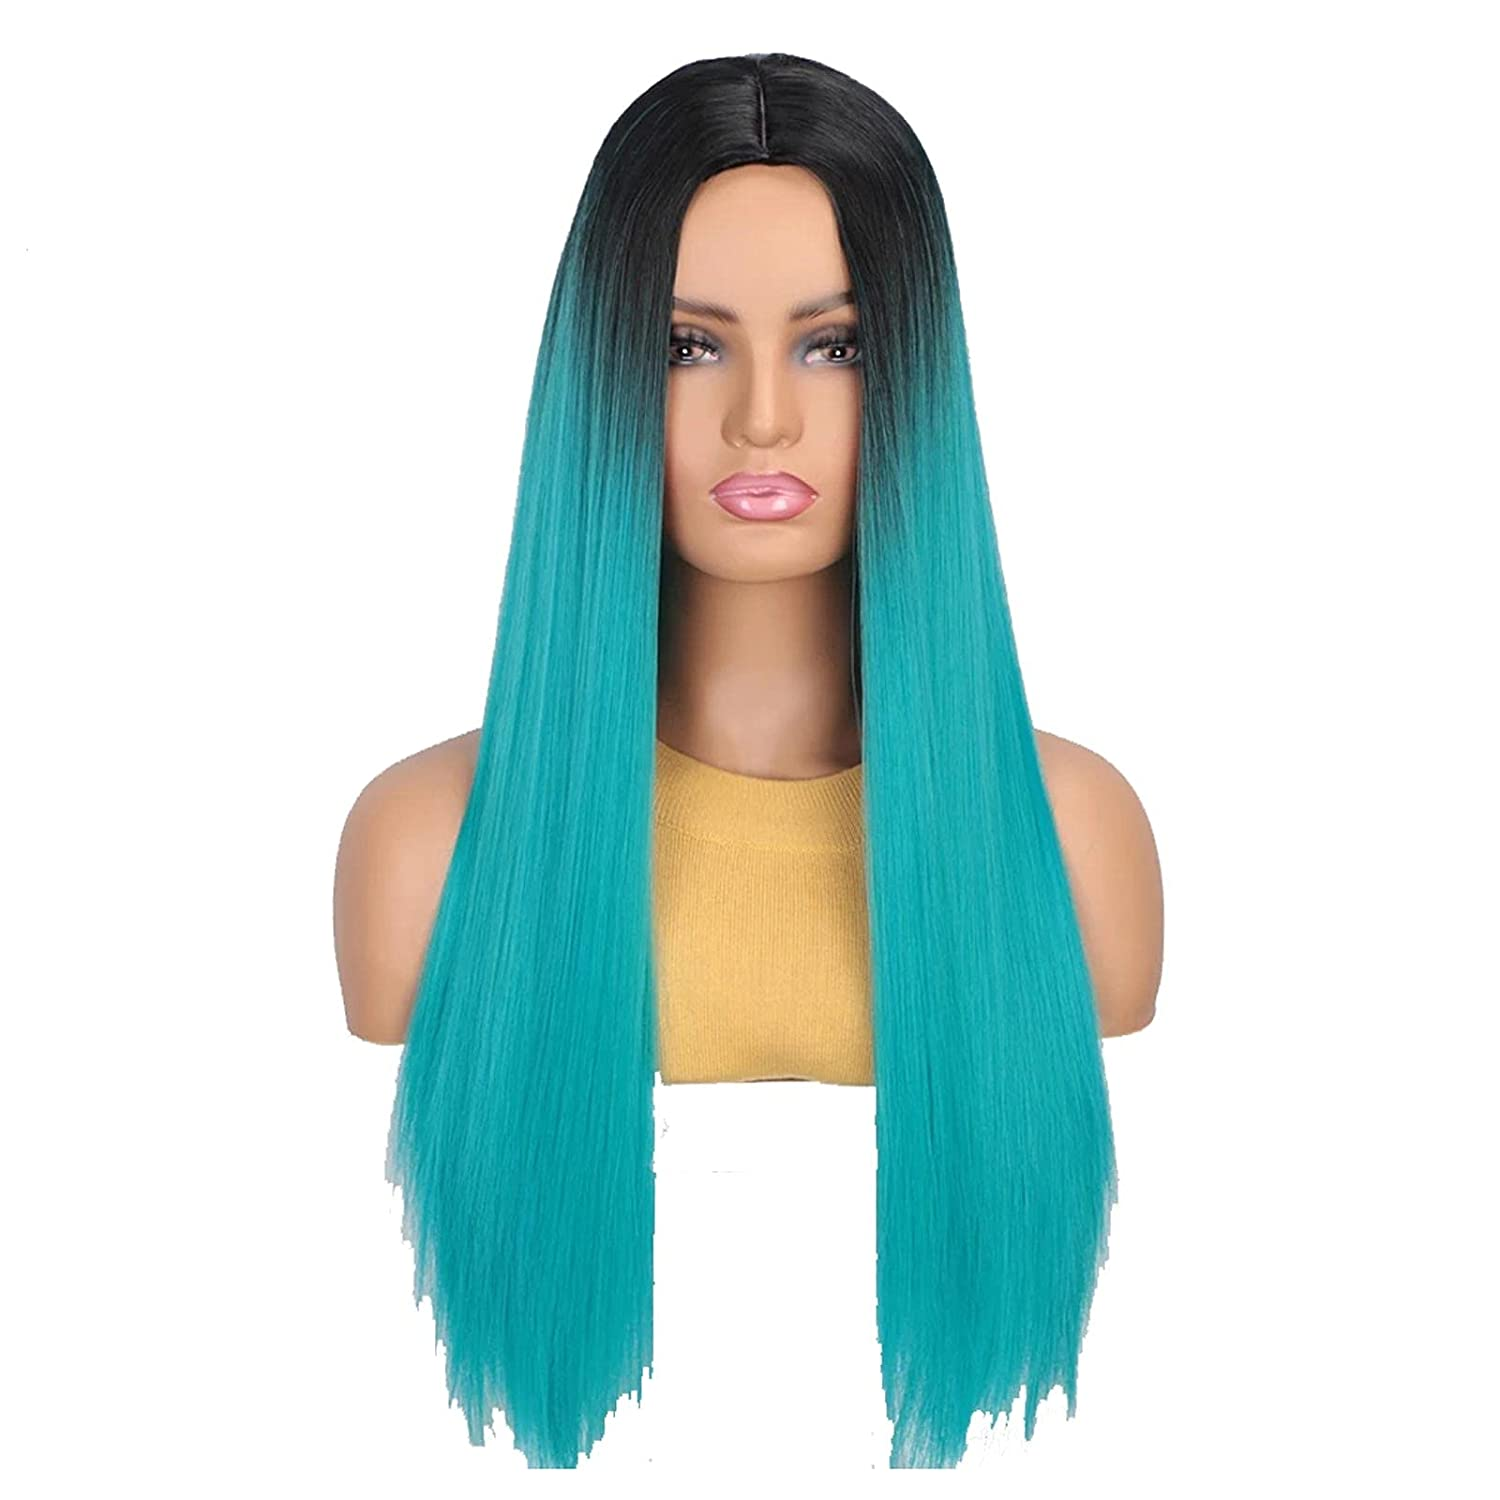 wigs Synthetic Cosplay Wigs for Gradien Part Long Limited Special Sales for sale Price Women Straight